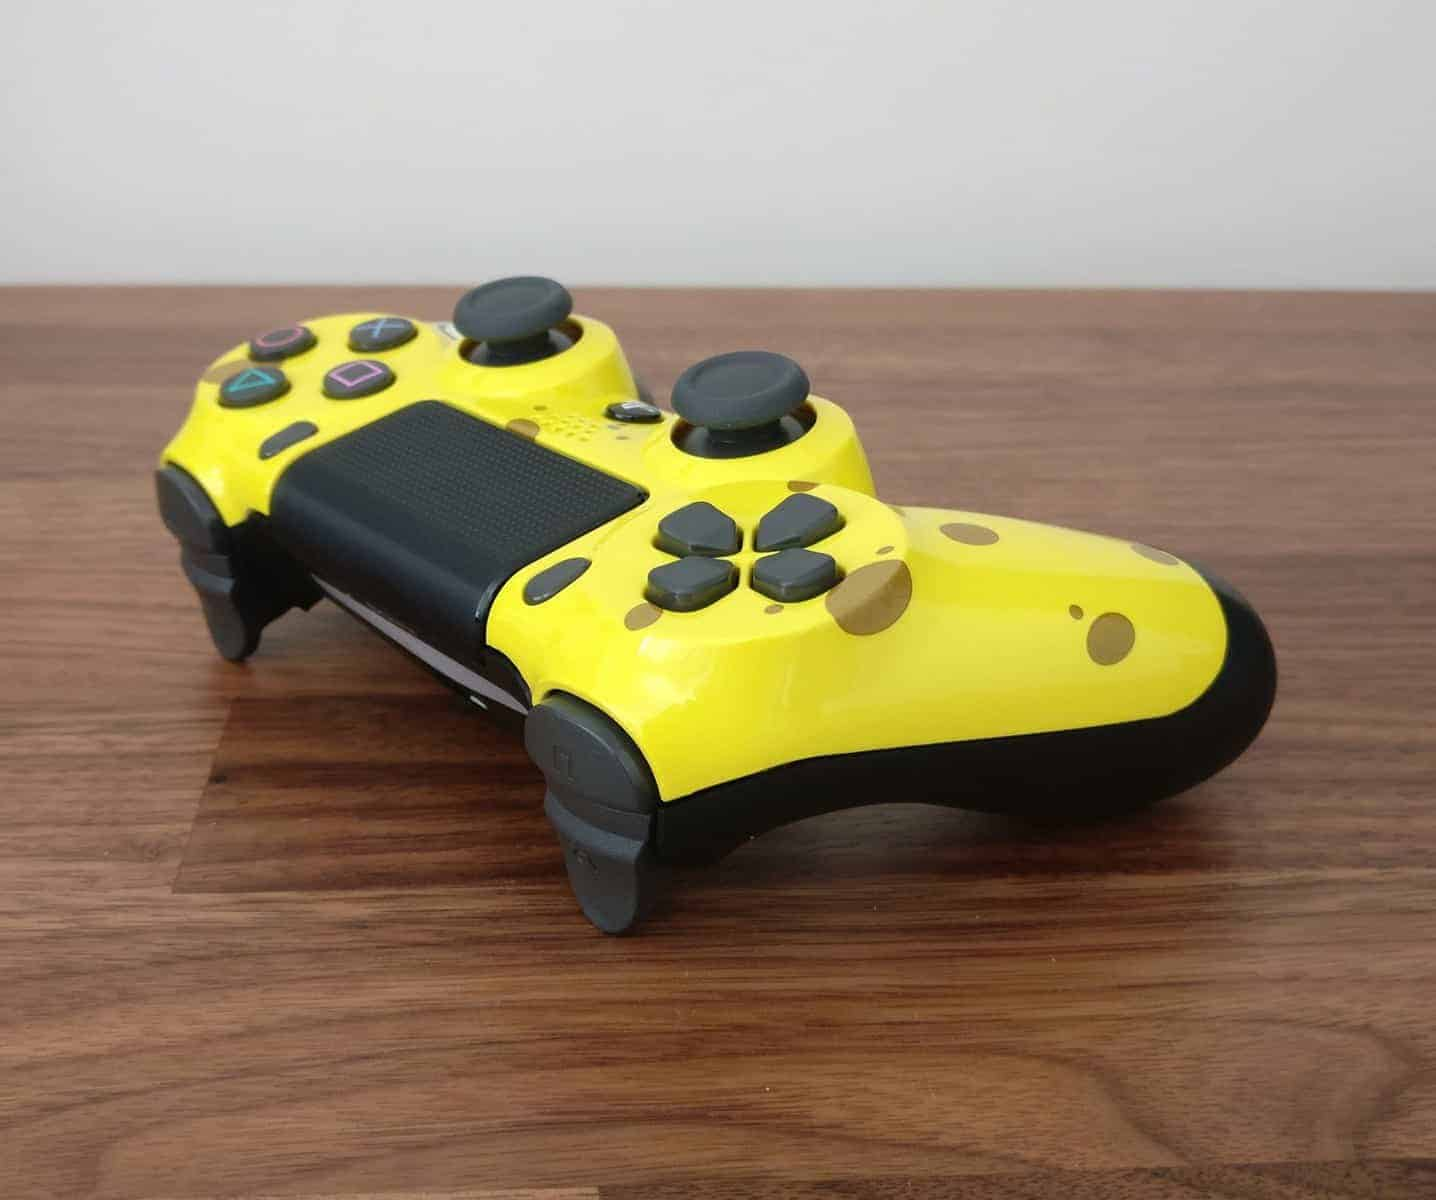 mega-modz-planey-ps4-Photos-08 Mega Modz Planet Modded PS4 and Xbox One Controller Review